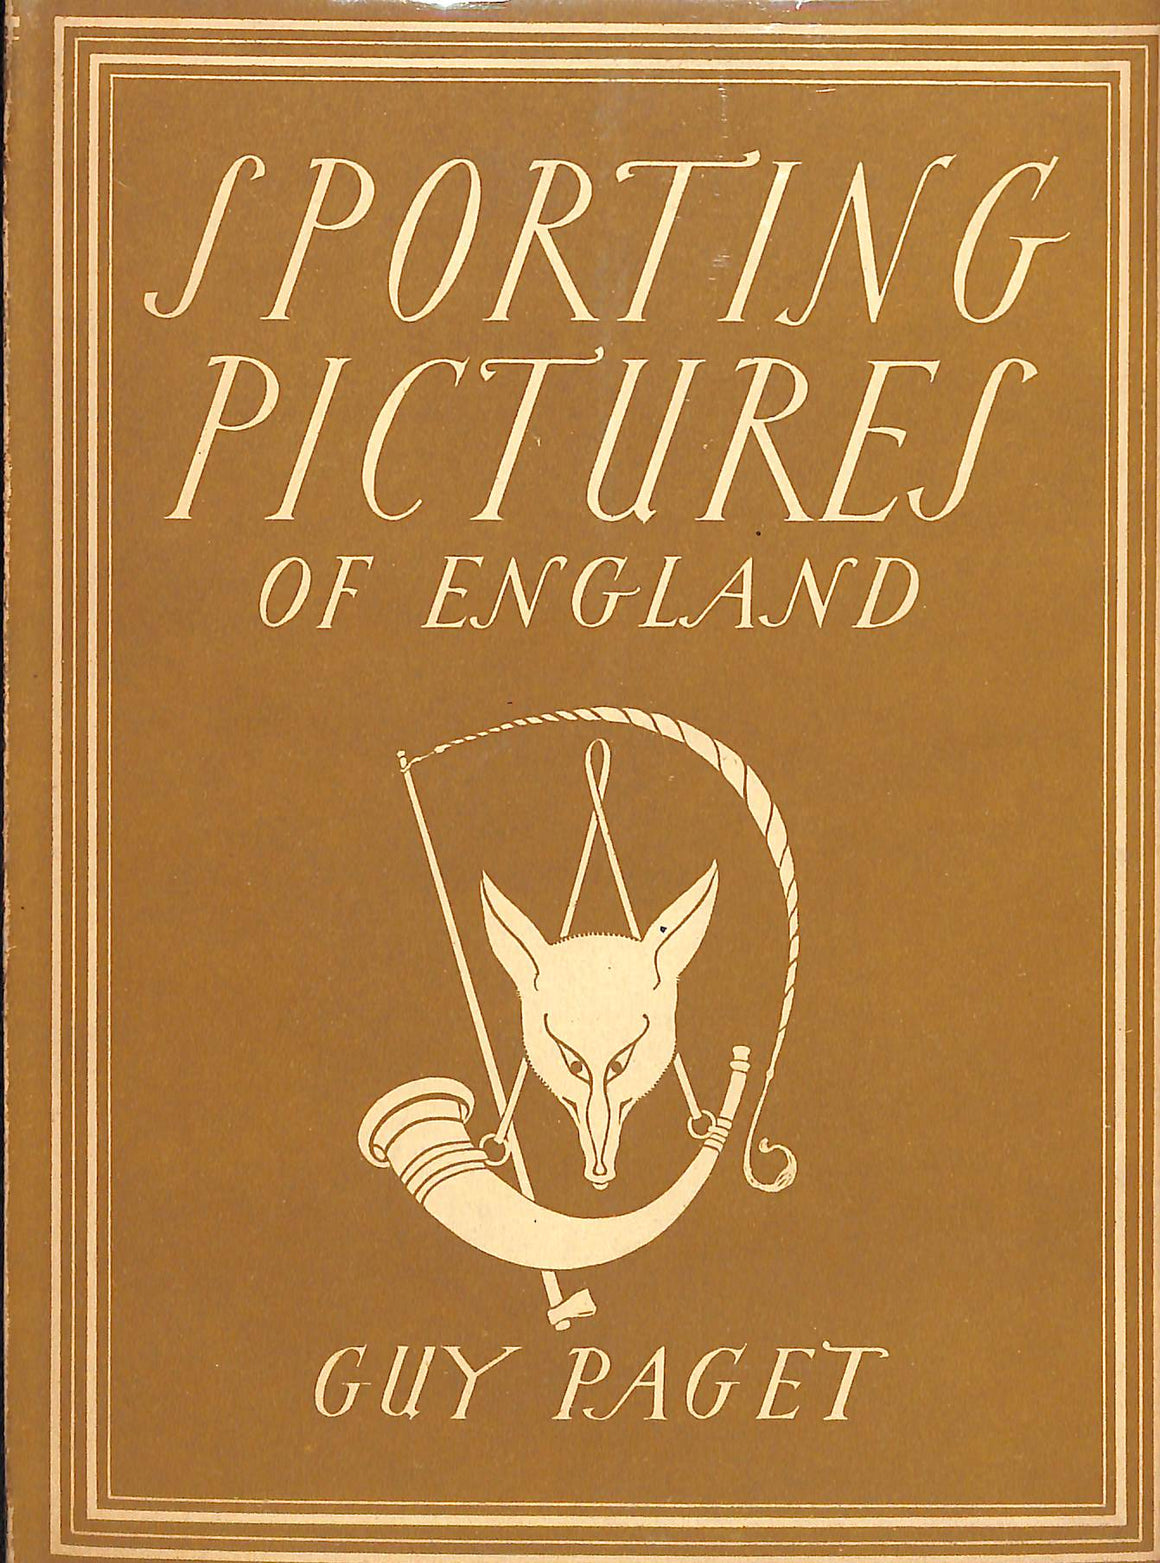 """Sporting Pictures of England"""